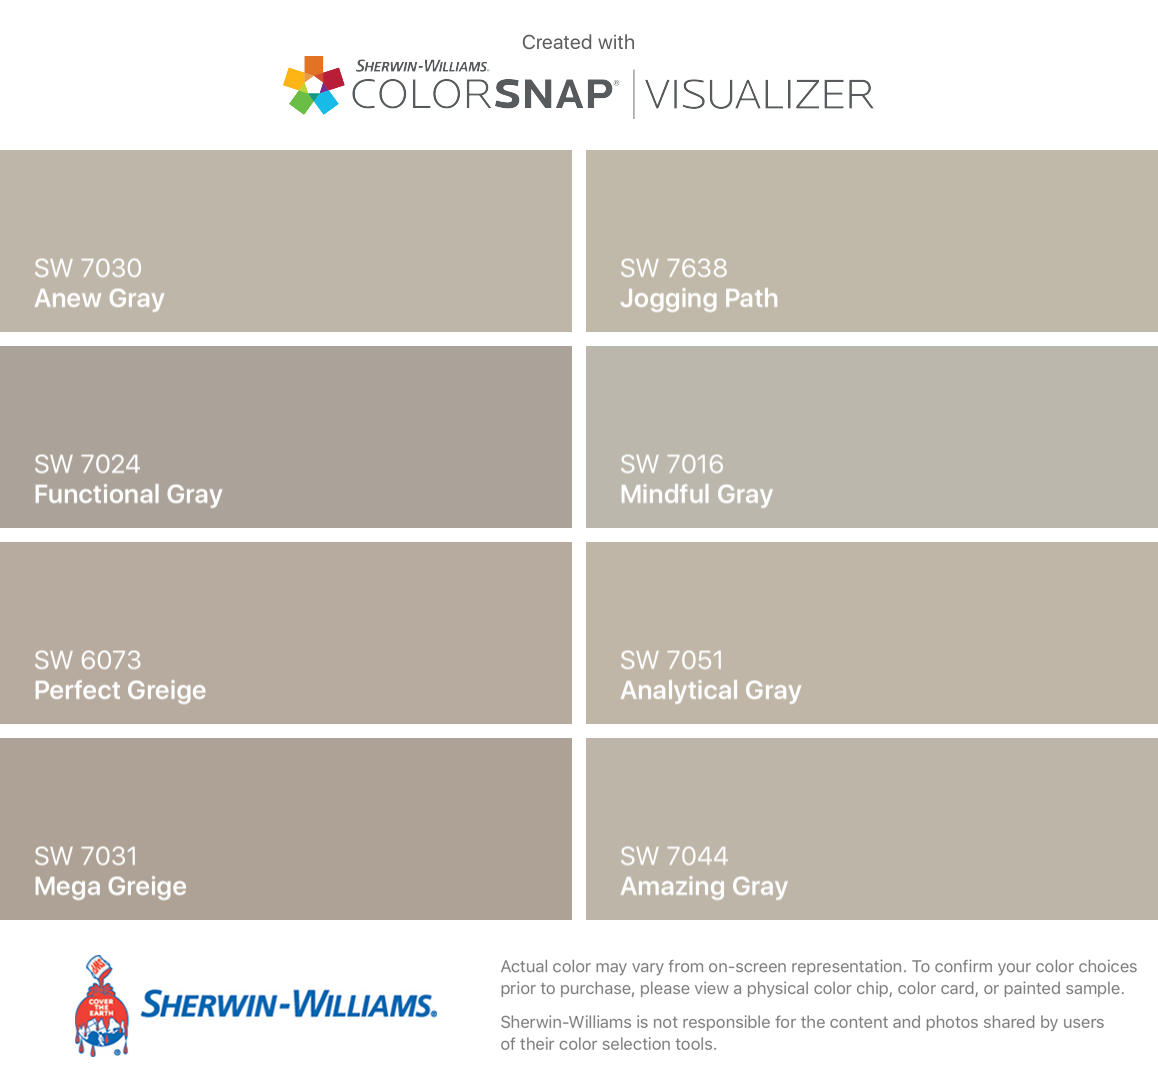 I Found These Colors With Colorsnap Visualizer For Iphone By Sherwin Williams Anew Gray Sw 7030 Sherwin Williams Colors Paint Colors For Home Agreeable Gray